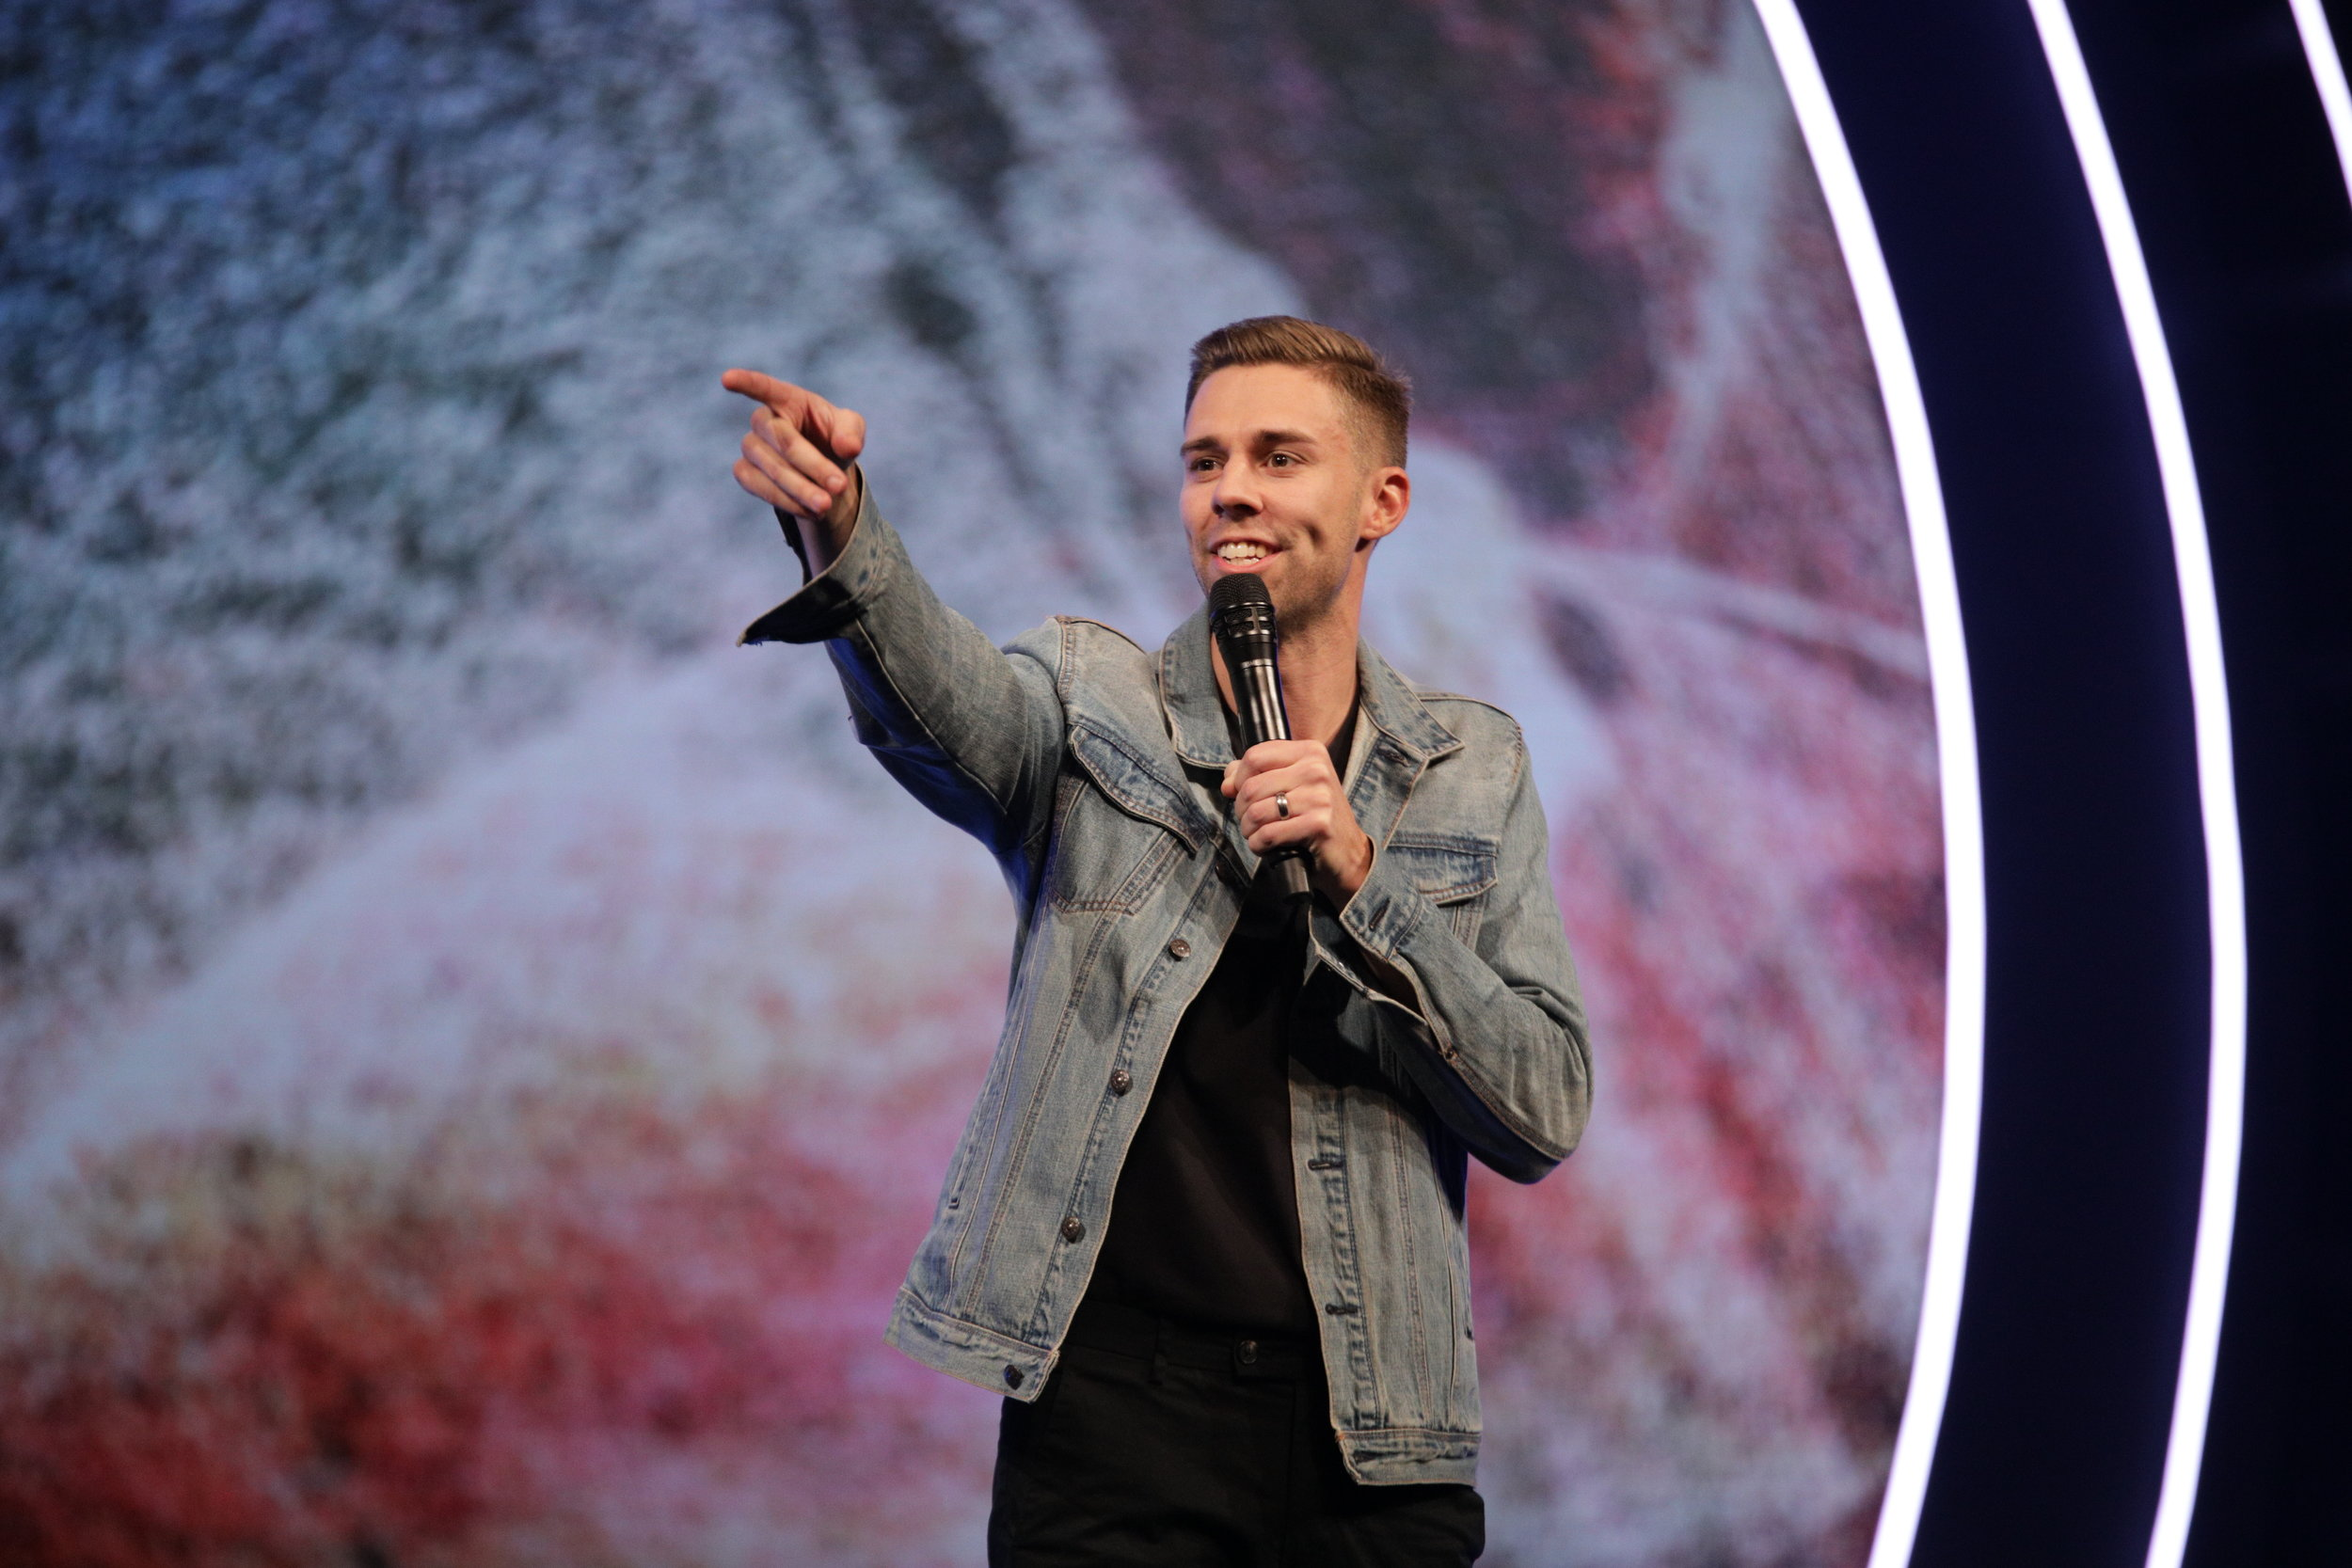 Austin Westlake- District Youth Director     Austin Westlake is a third generation Assemblies Of God minister who first heard the call to preach at the age of 16 while attending The Assemblies Of God National Youth Conference. He went on to attend Central Bible College where he met his wife Lauren and graduated with a Bachelor's Degree in Church Leadership. Upon graduation Austin and Lauren became youth pastors at Sheffield Family Life Center in Kansas City, Missouri which is one of the largest multicultural churches in the midwest. Together, Austin and Lauren spent over five years in Kansas City ministering in both the inner city of and greater metropolitan area. Austin loves to preach the Gospel and is passionate about building the local church by resourcing leaders and helping young people step into their calling.    Together Austin and Lauren have a son, Jude, who brings so much joy to their family.    Austin enjoys good coffee, watching KC Royals baseball, and vacations to Disney World.    He also lives by this rule: Why would you go camping when you can go shopping?